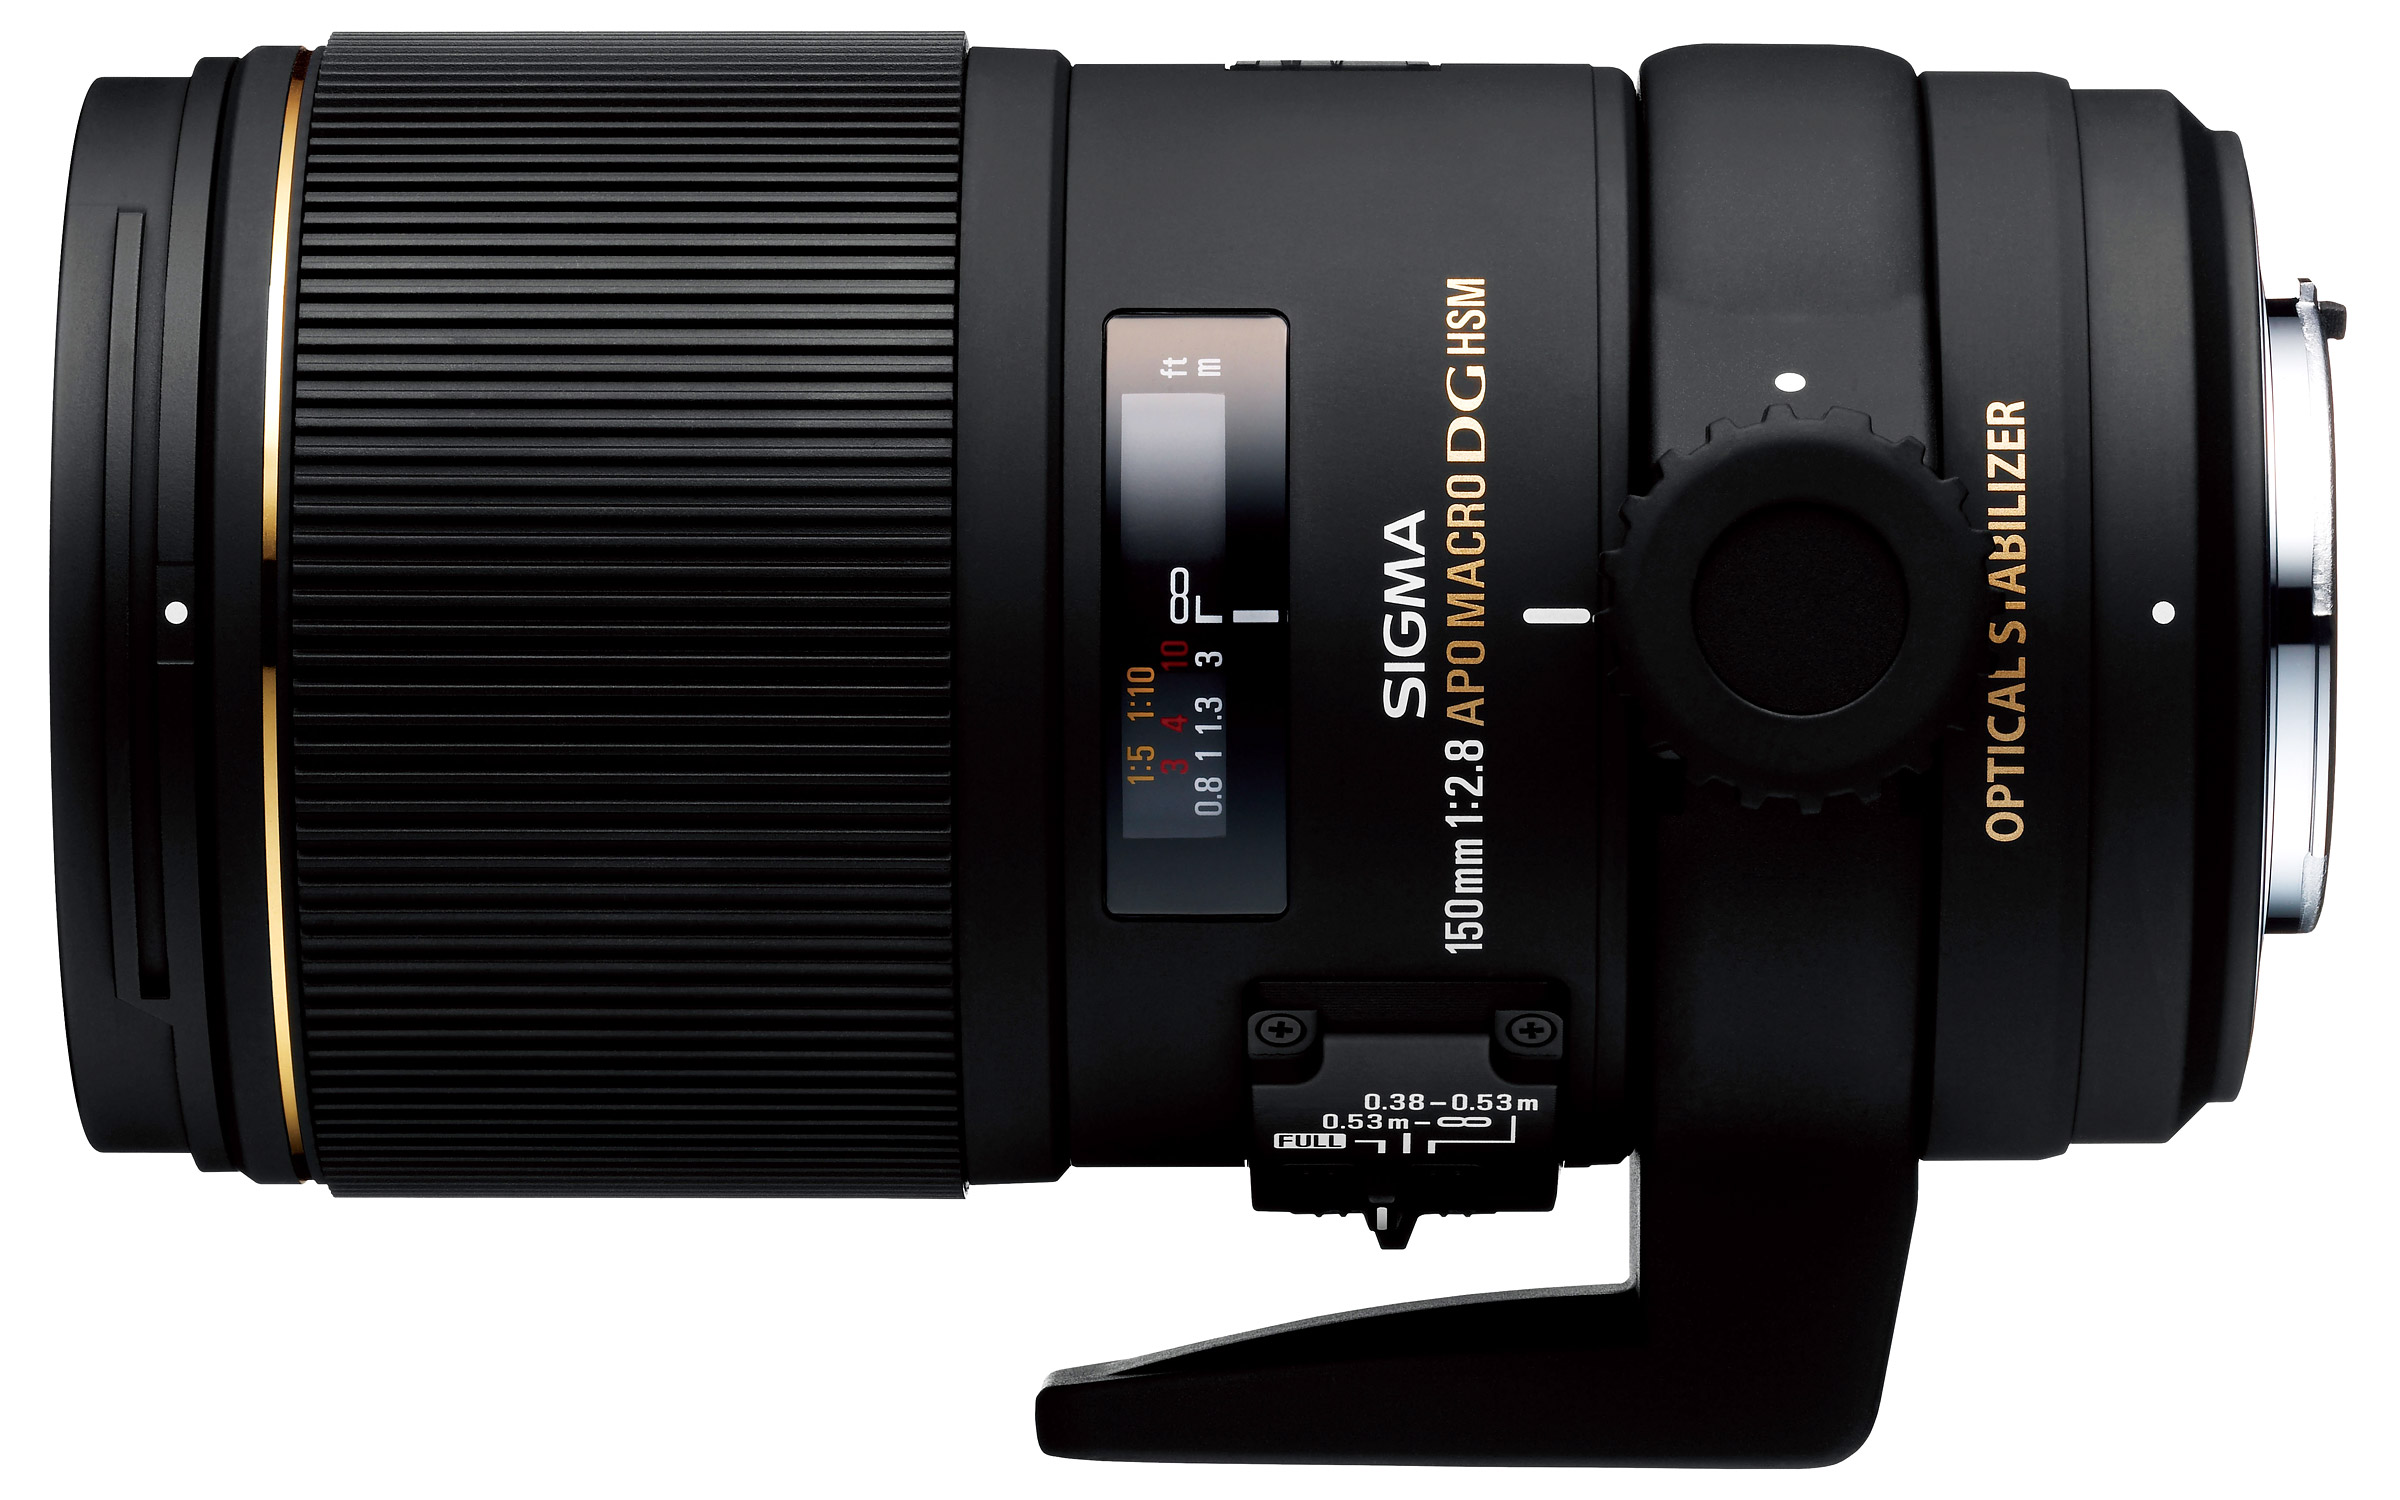 Sigma 150mm F 28 Ex Dg Os Hsm Macro Specifications And Opinions 85mm 14 For Nikon